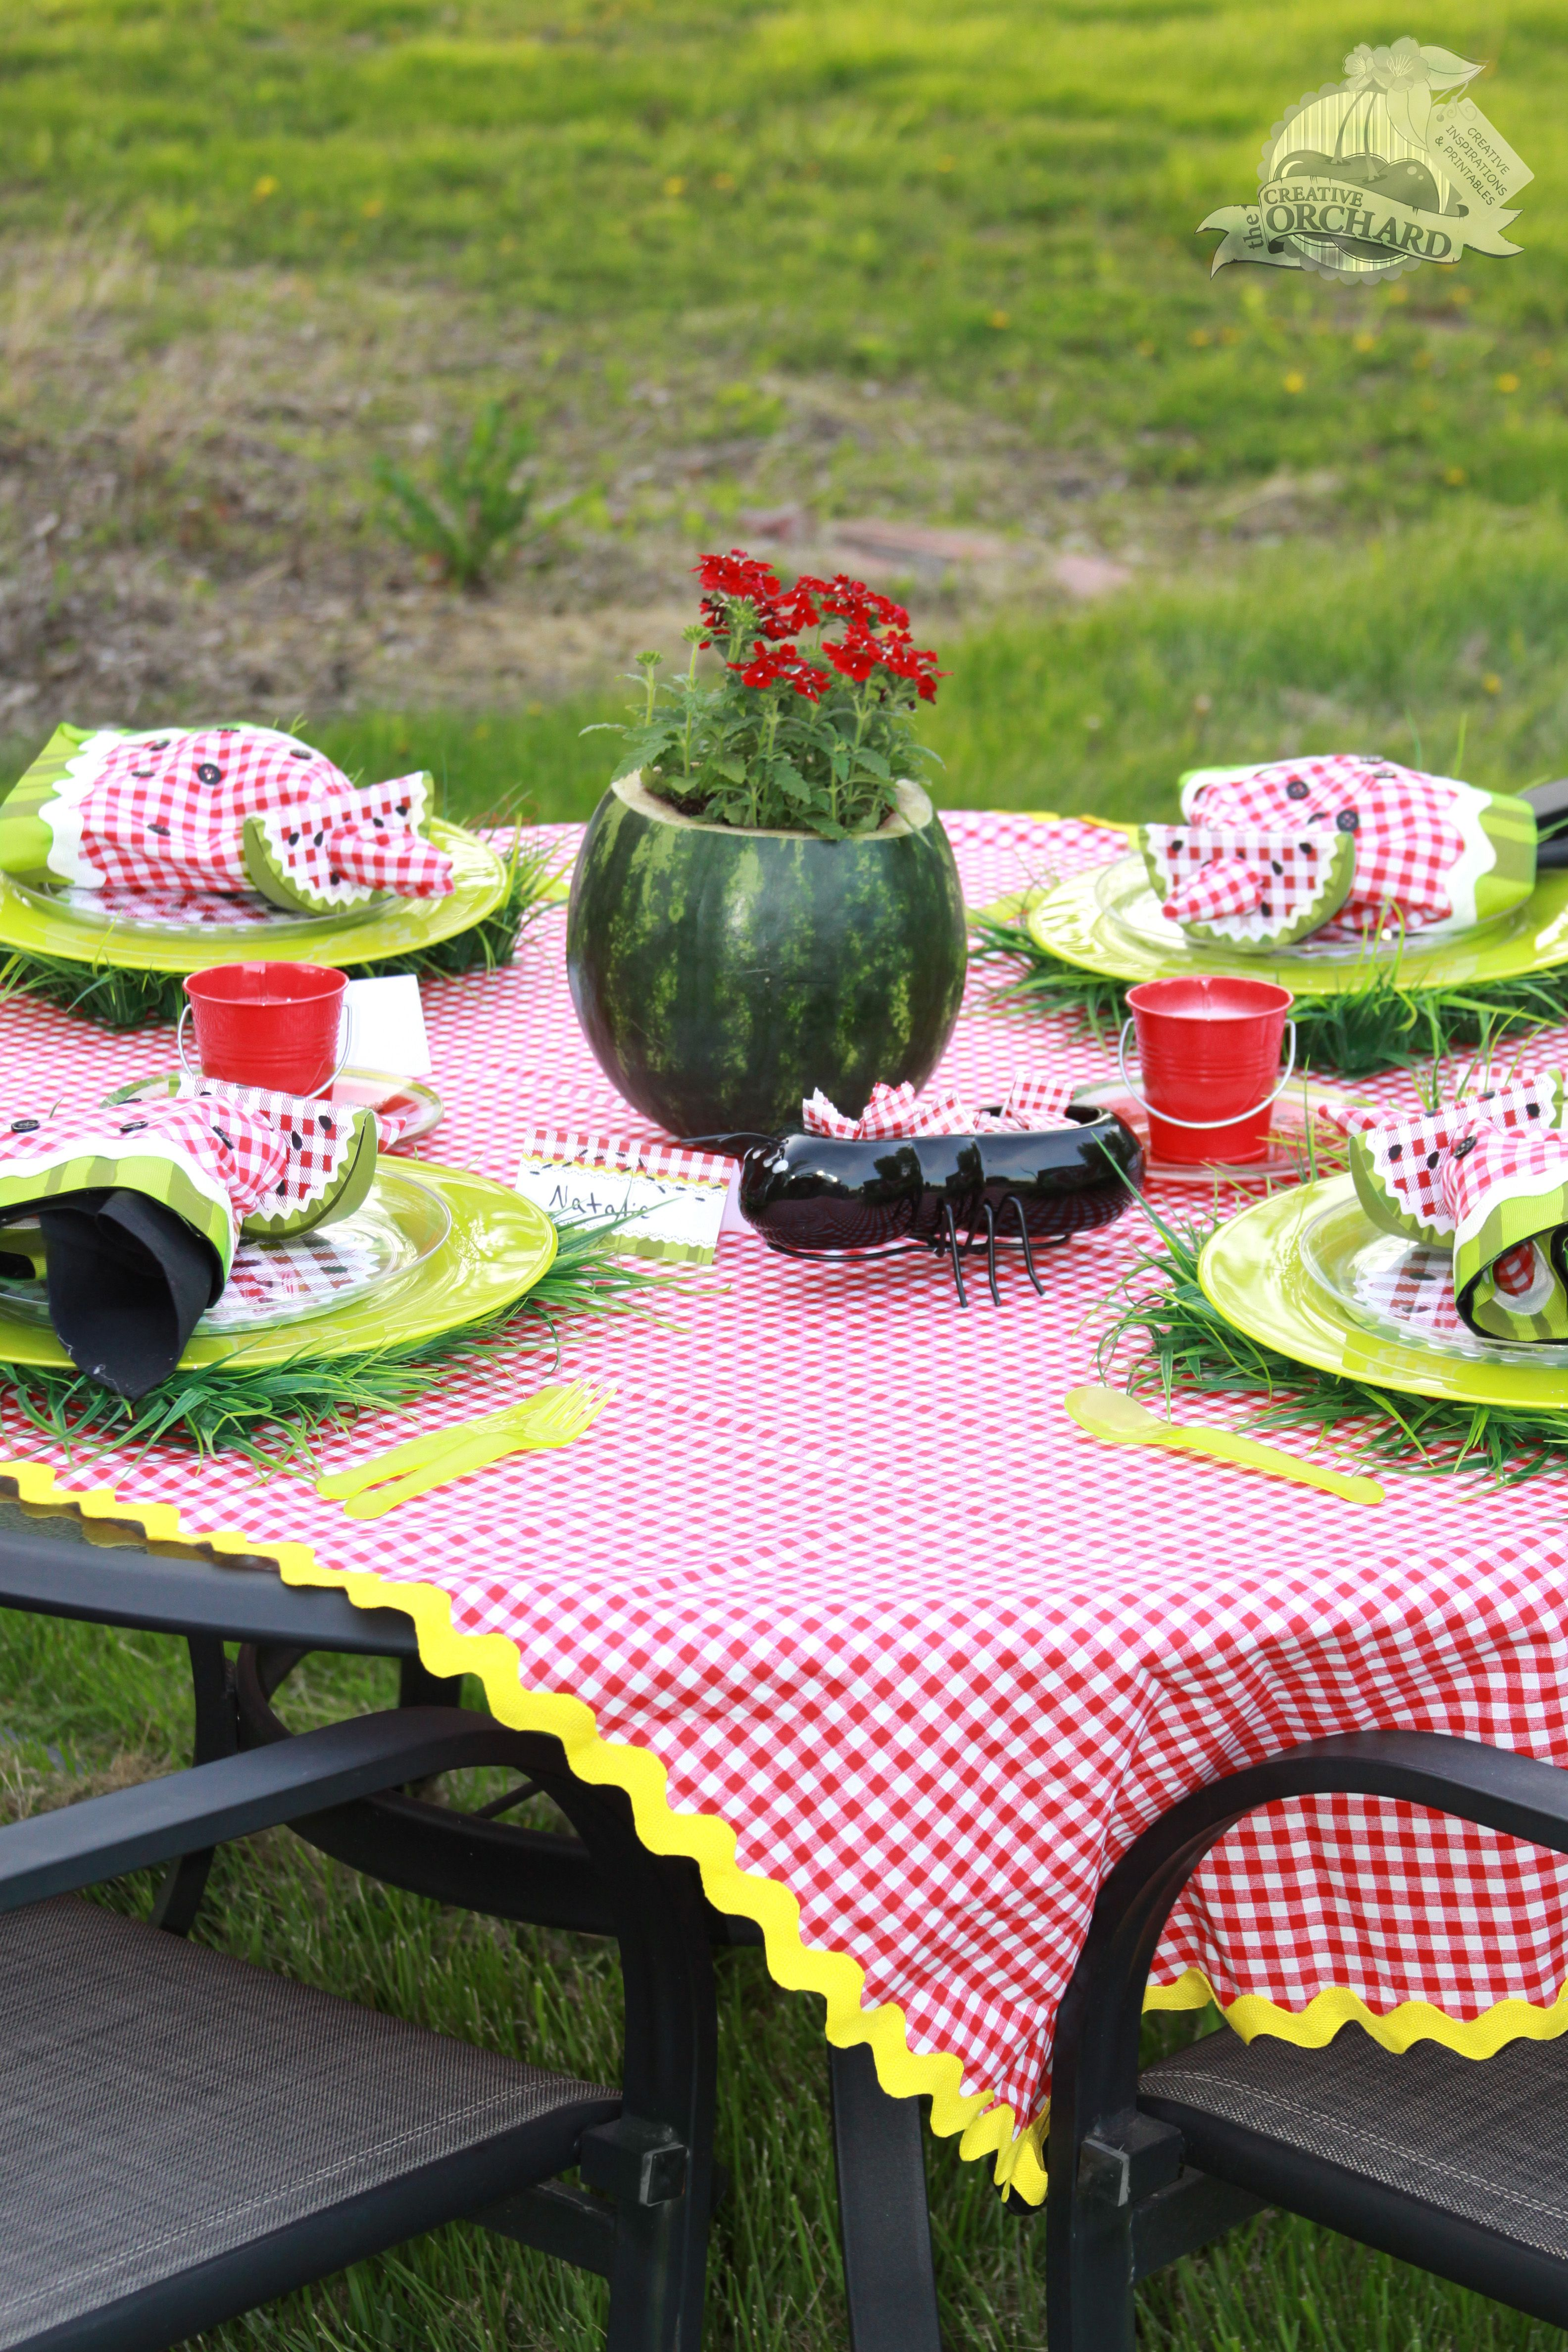 Picnic Table Setting- I like the flowers in the watermelon idea. & Picnic Table Setting- I like the flowers in the watermelon idea ...